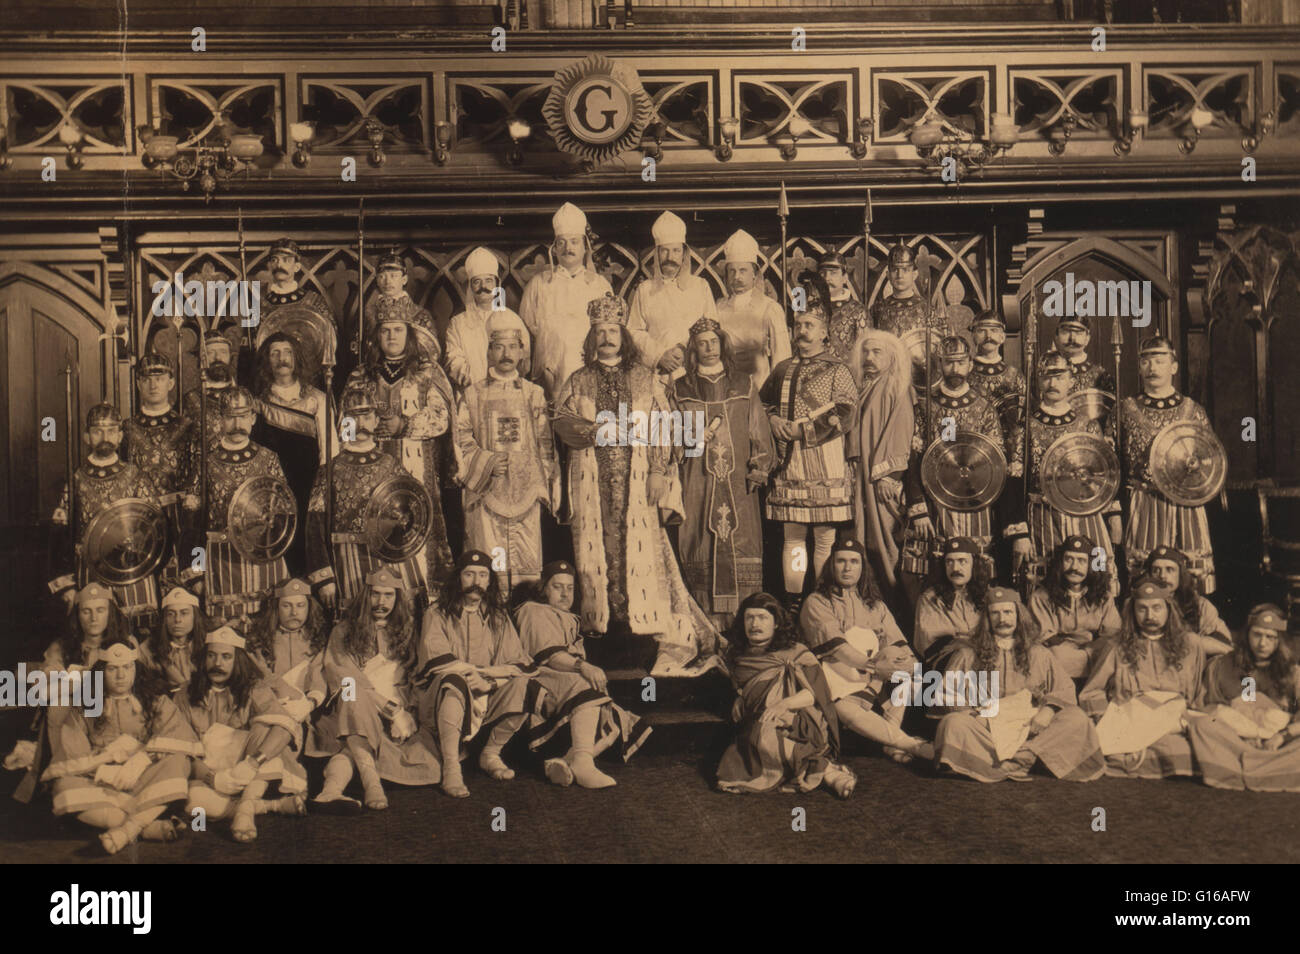 Group portrait of Freemasons of Anglo-Saxon Lodge, seated and standing, in ceremonial dress, 1902. Freemasonry is - Stock Image